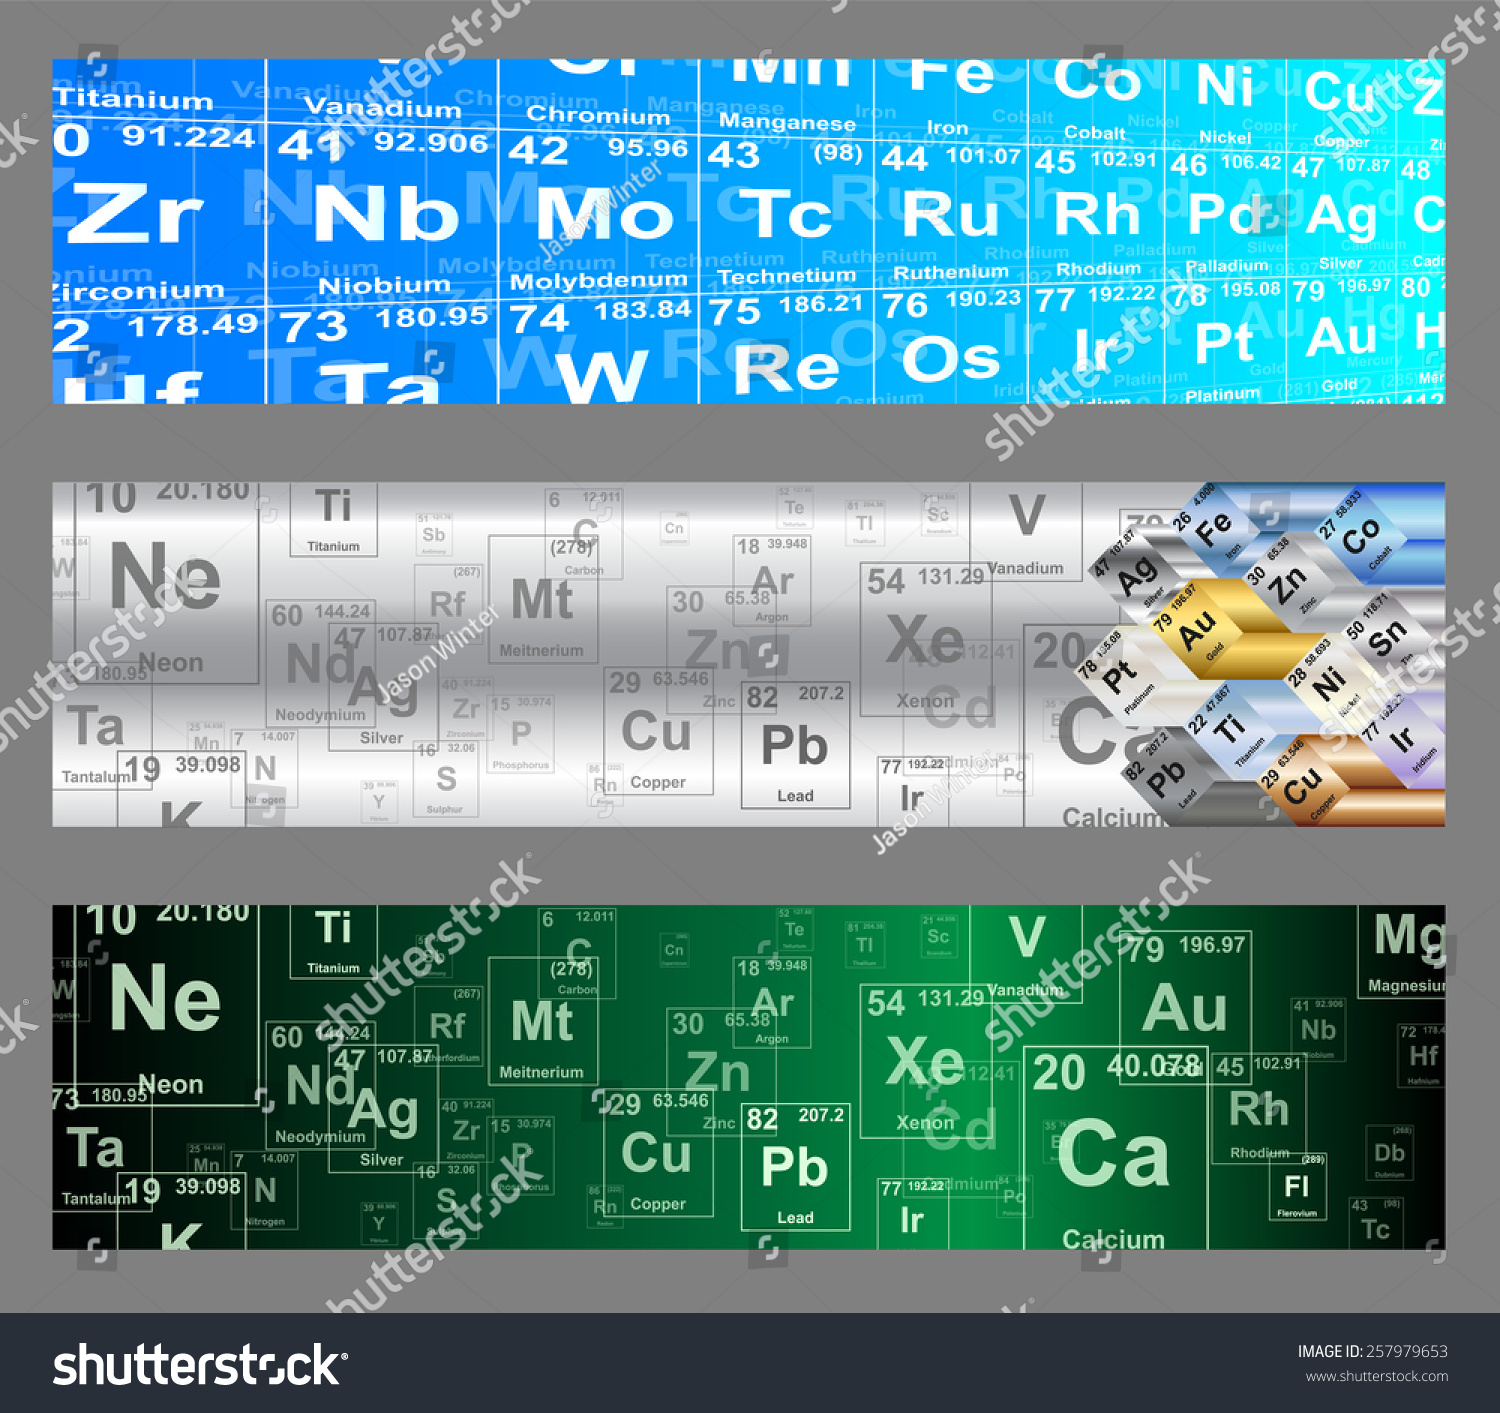 Chemical elements periodic table web banner stock vector 257979653 chemical elements periodic table web banner vector backgrounds gamestrikefo Images